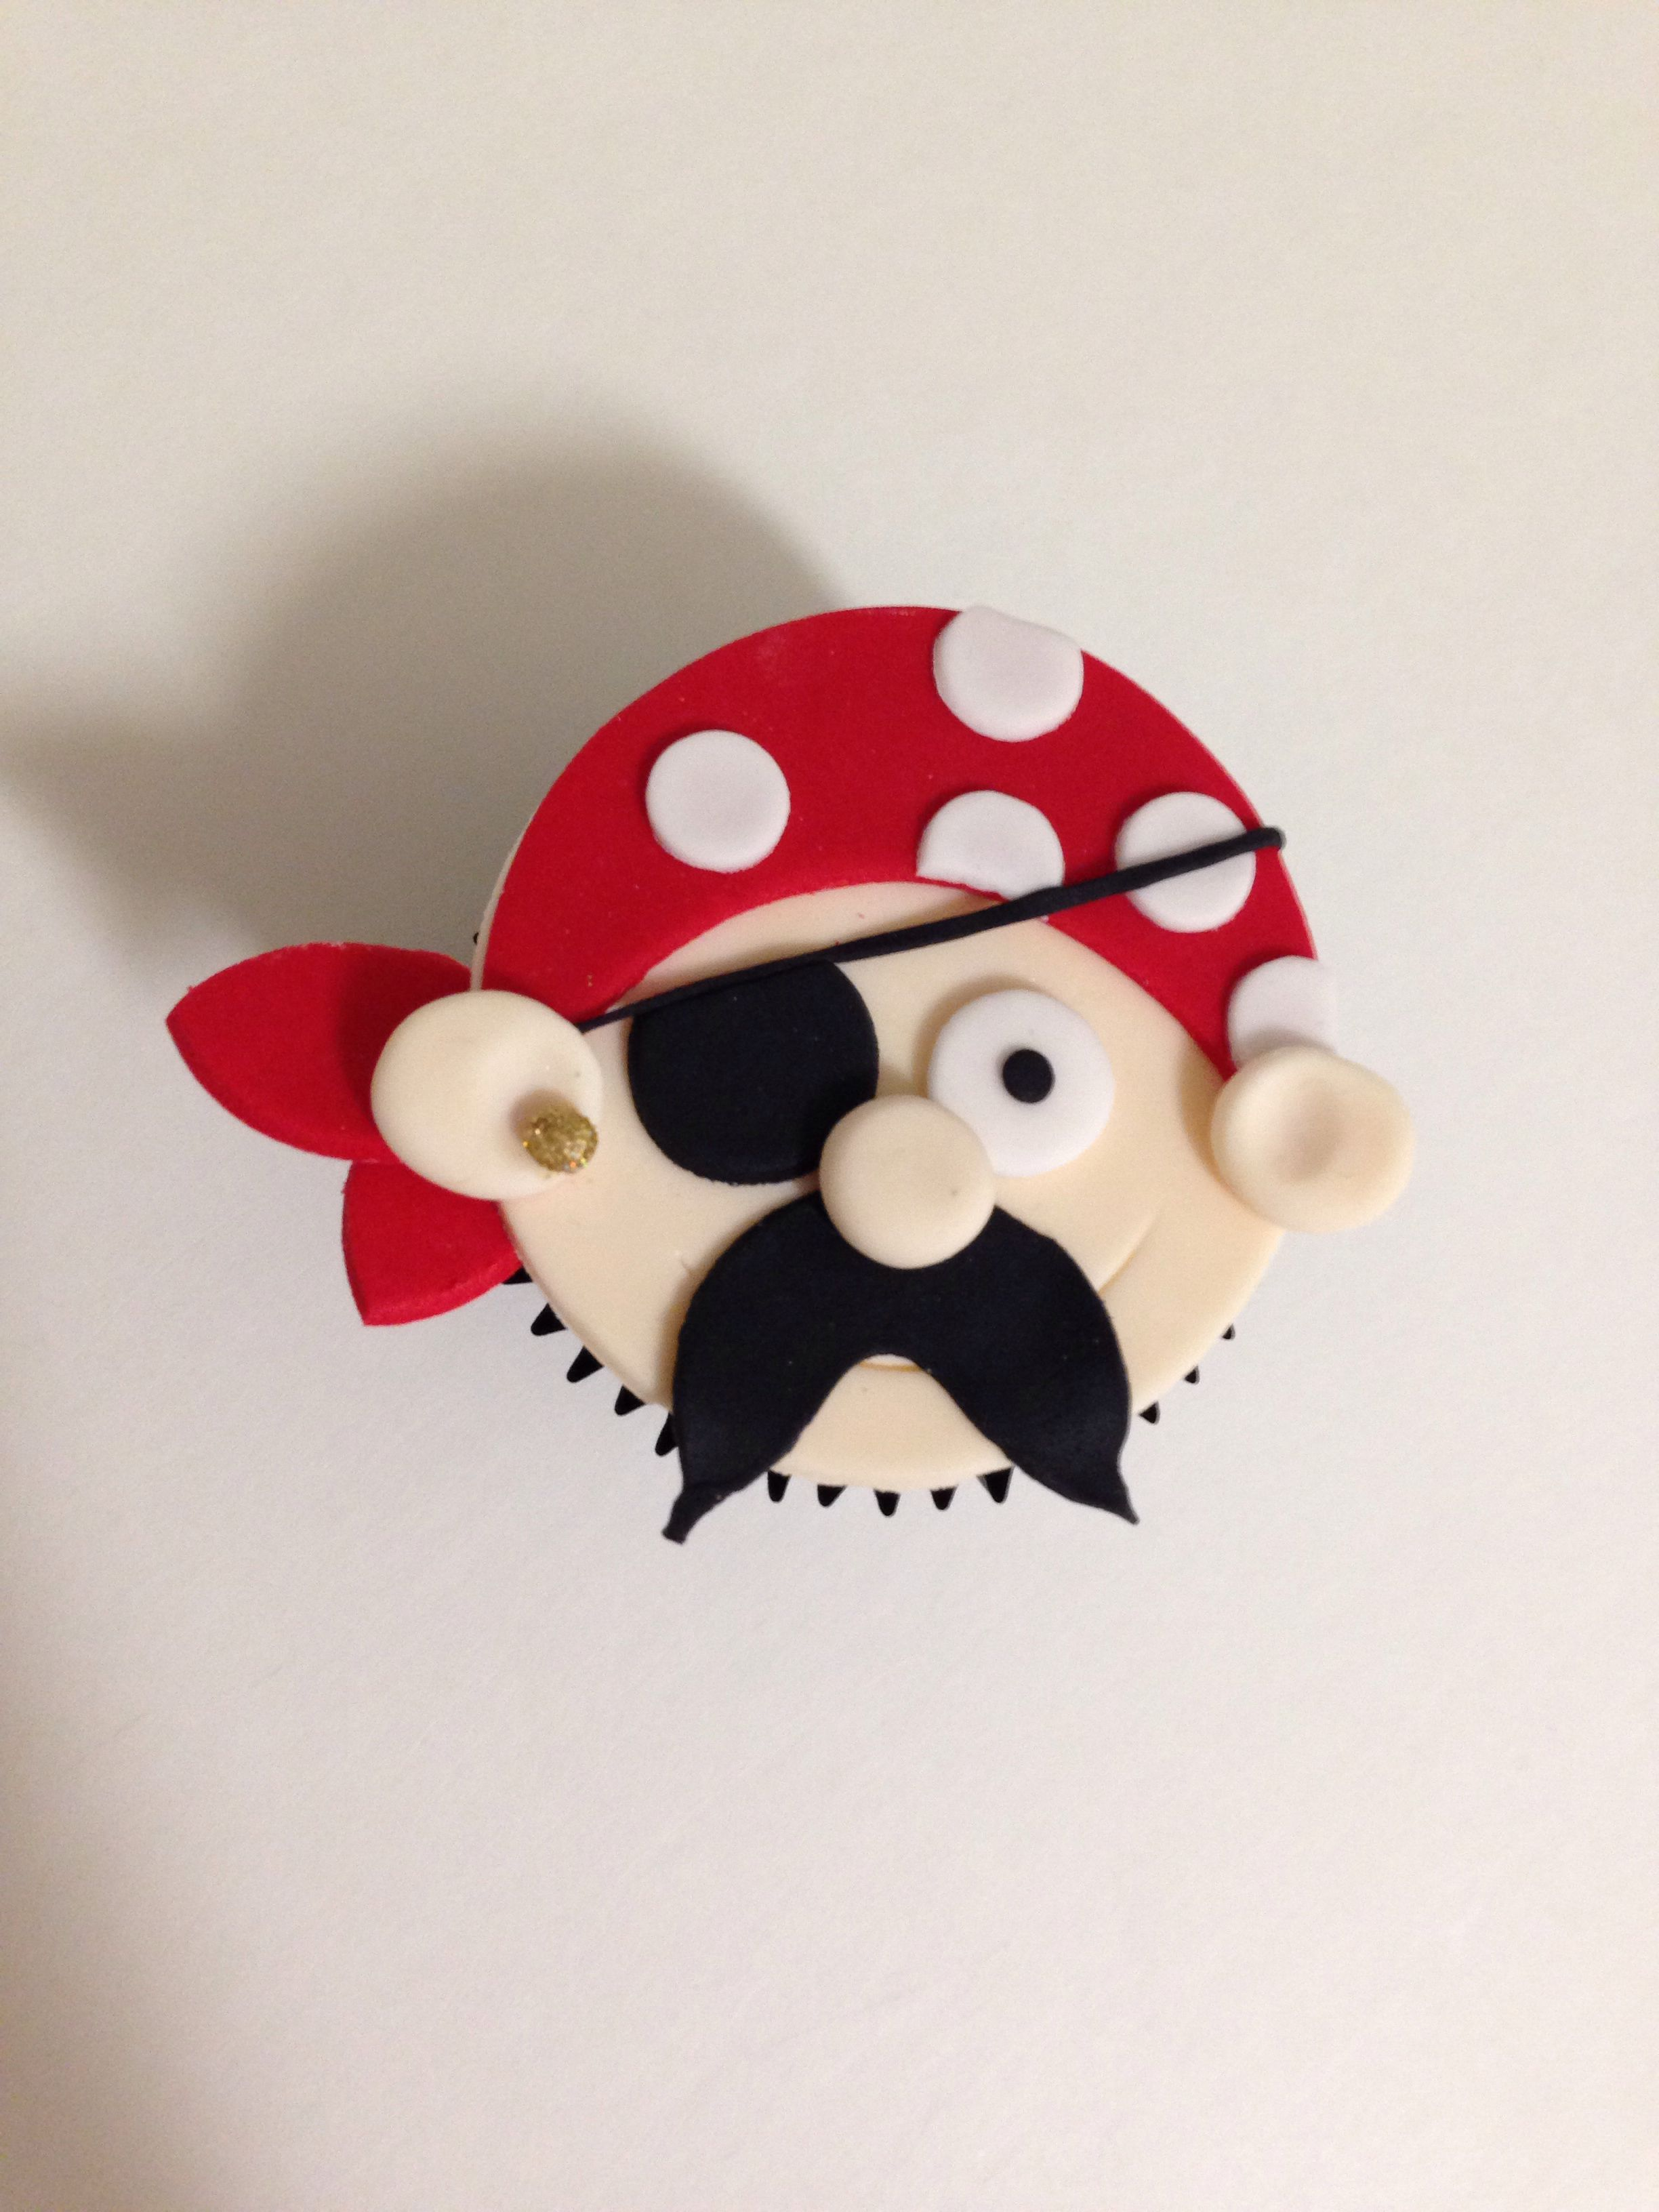 Pirate cupcakes - For all your cake decorating supplies, please visit craftcompany.co.uk